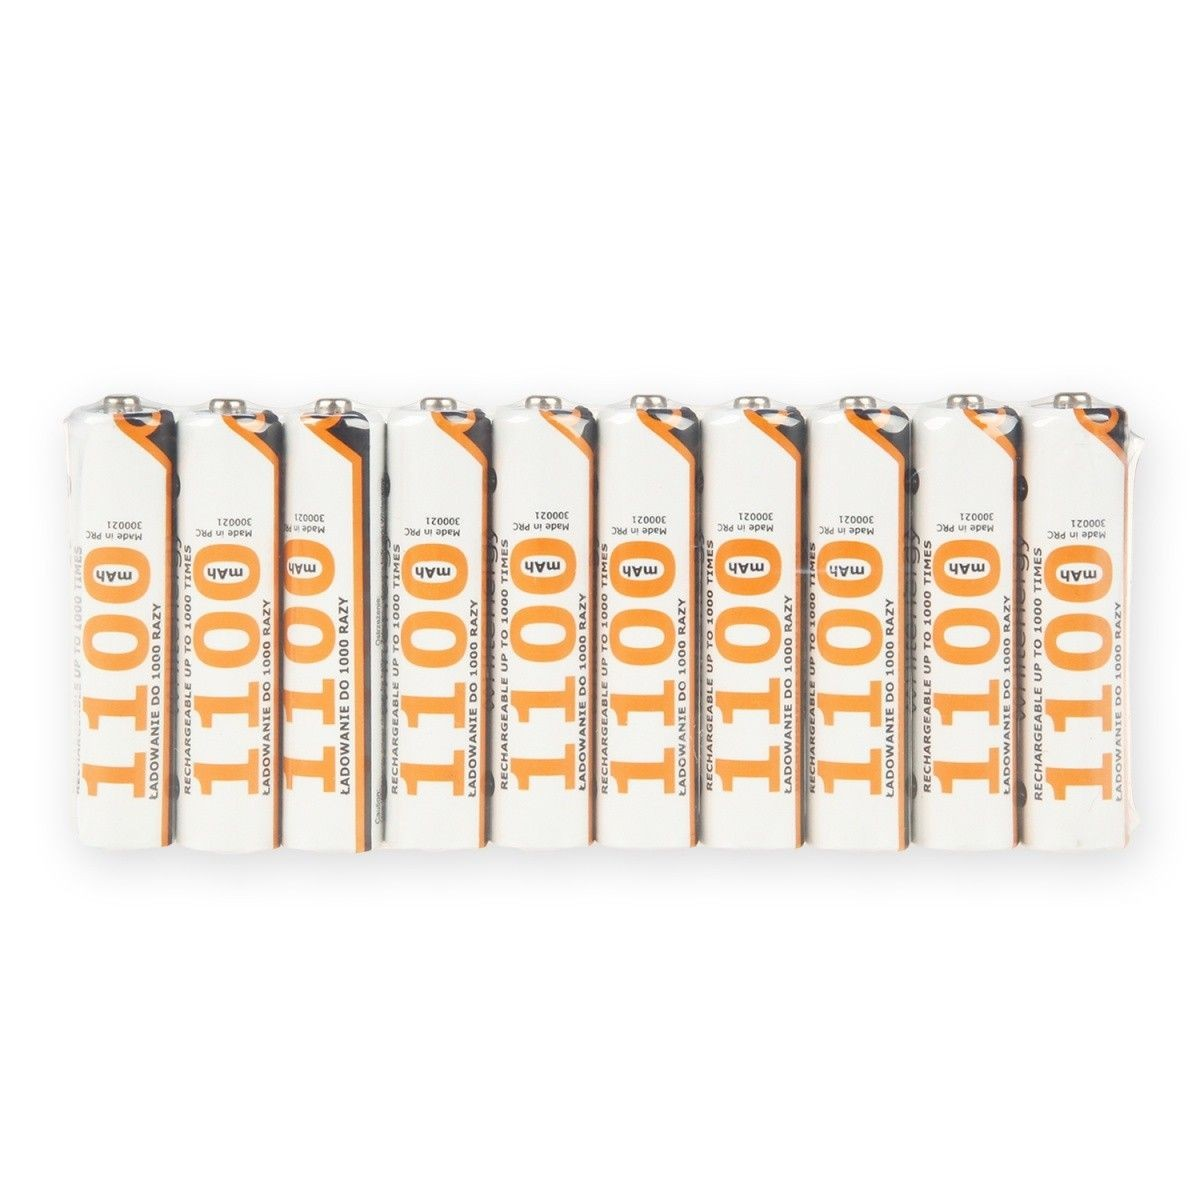 Whitenergy akumulatory AAA 1100mAh 10szt